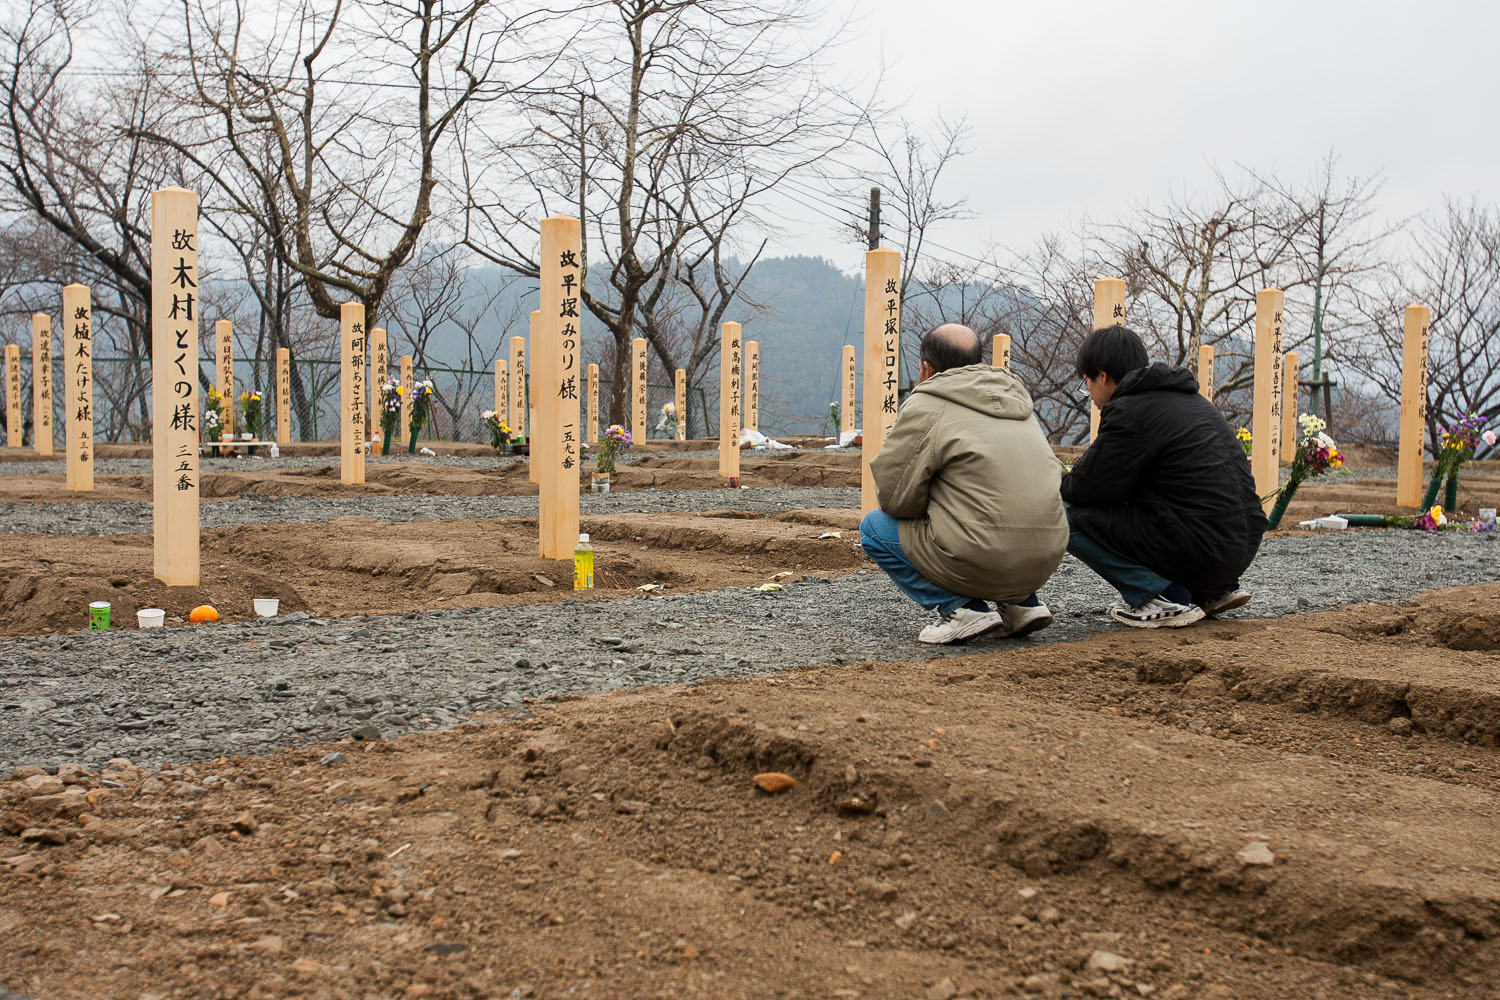 20110409_Tohoku_Aftermath_MG_1246.jpg